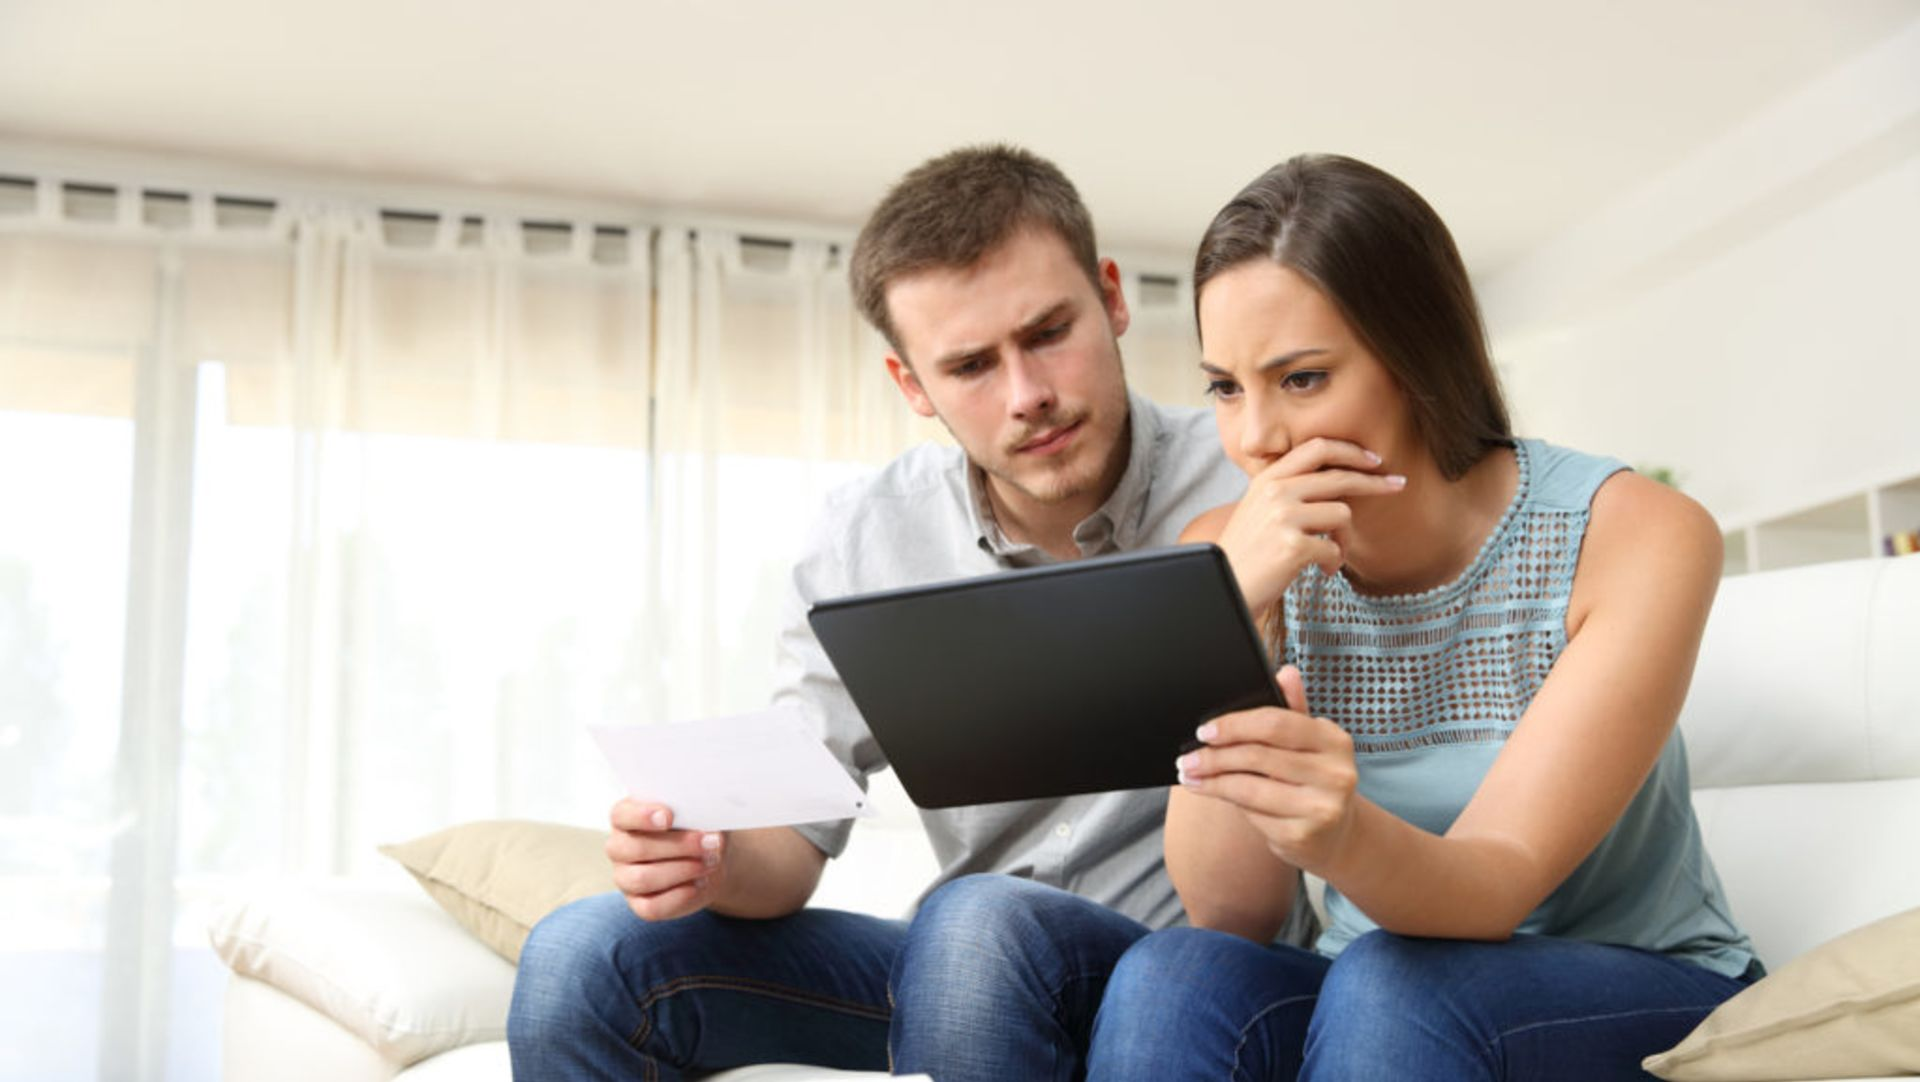 Why are buyers so Anxious?